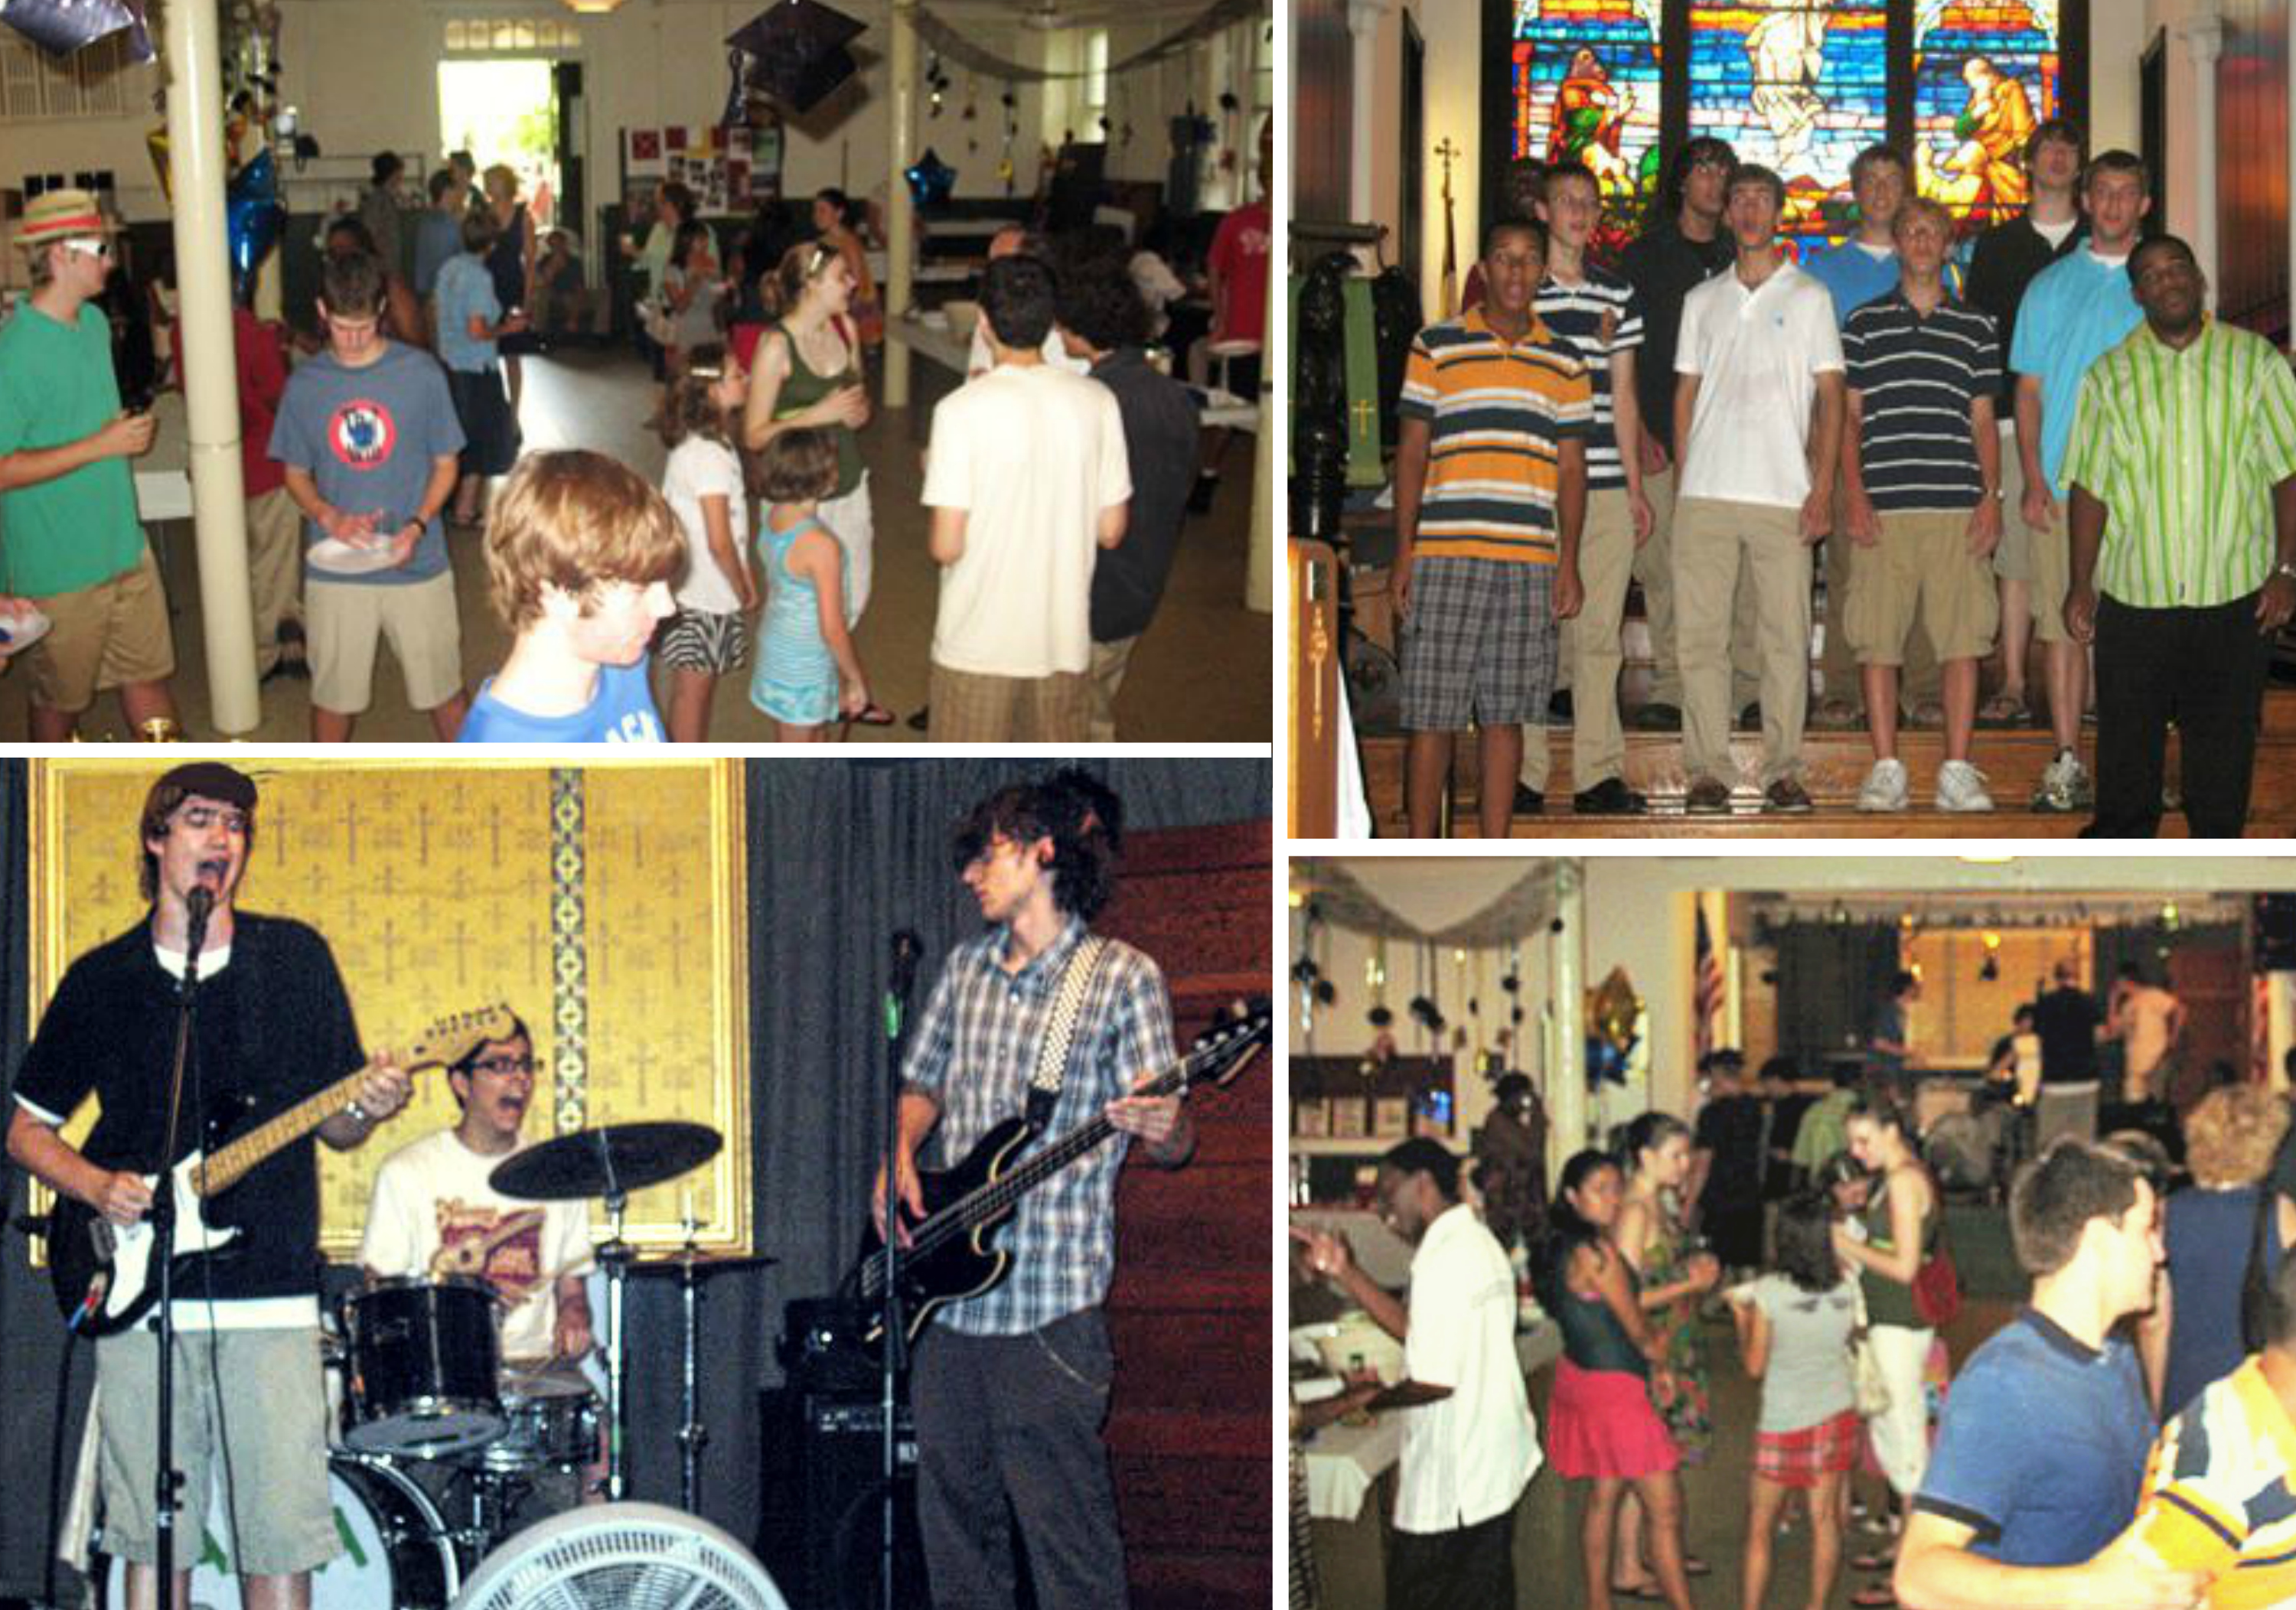 EastFallsLocal REdeemer summer 2008 festival collage